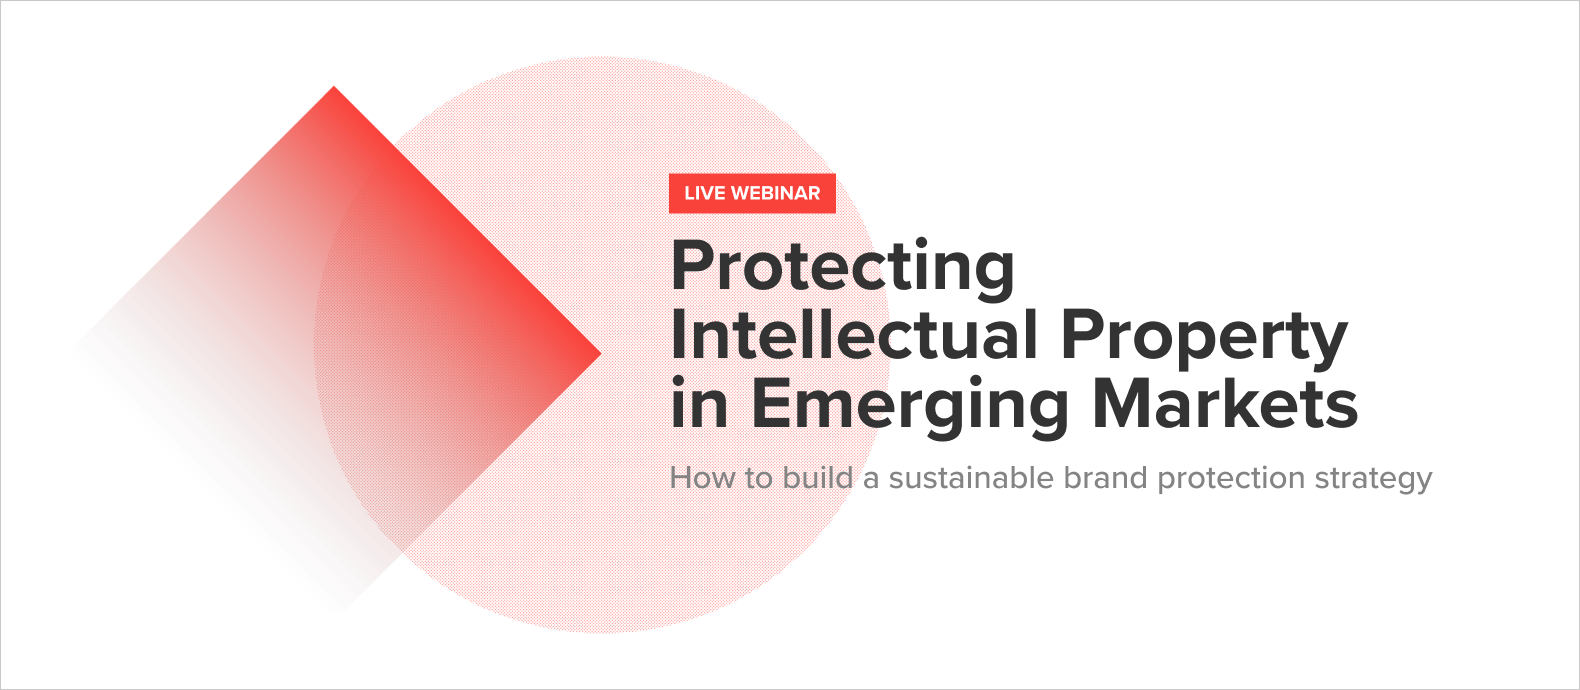 [Webinar] Protecting Intellectual Property in Emerging Markets